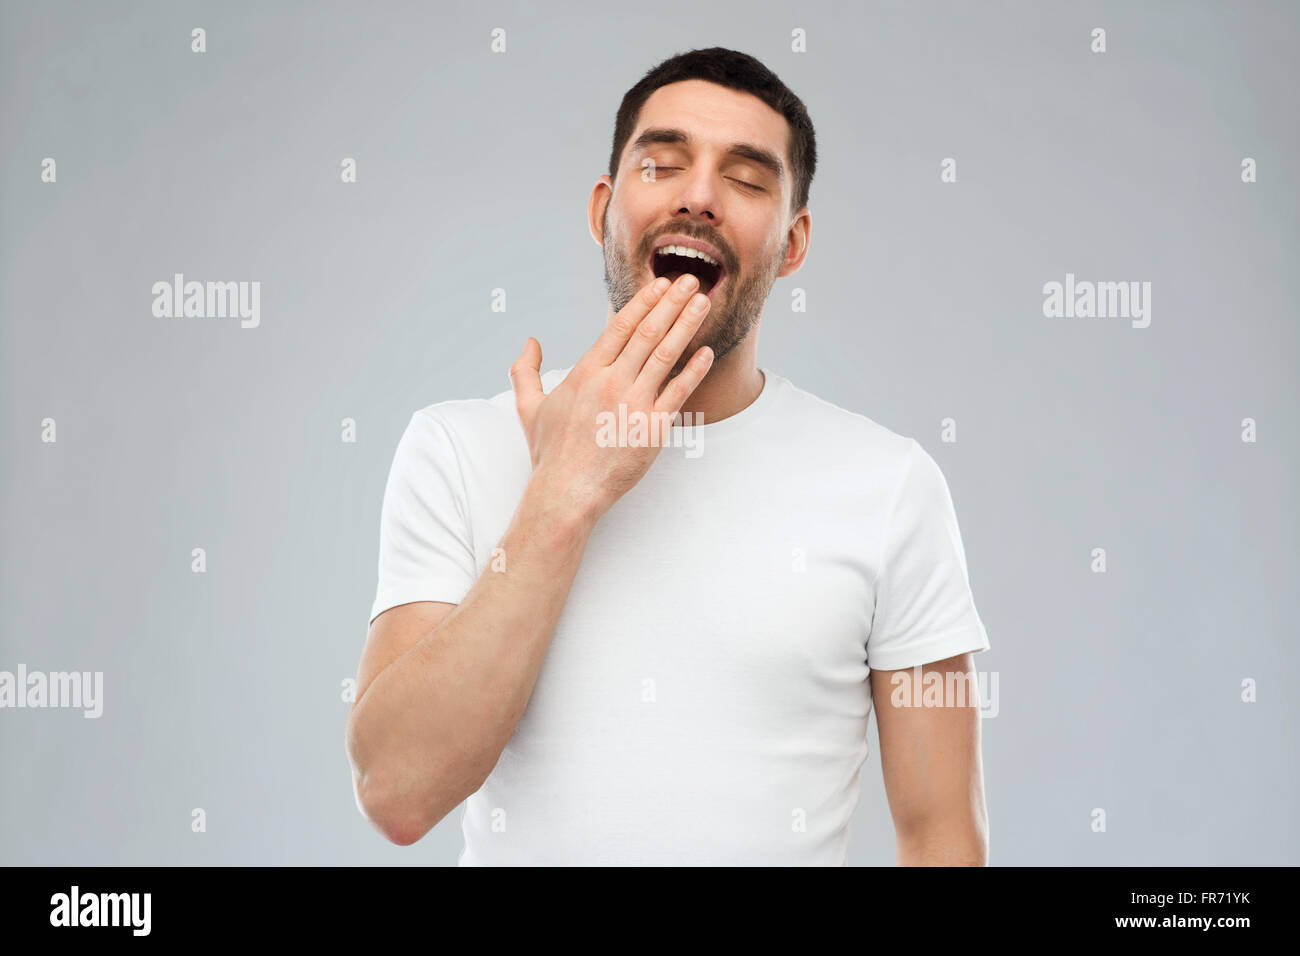 yawning man over gray background - Stock Image